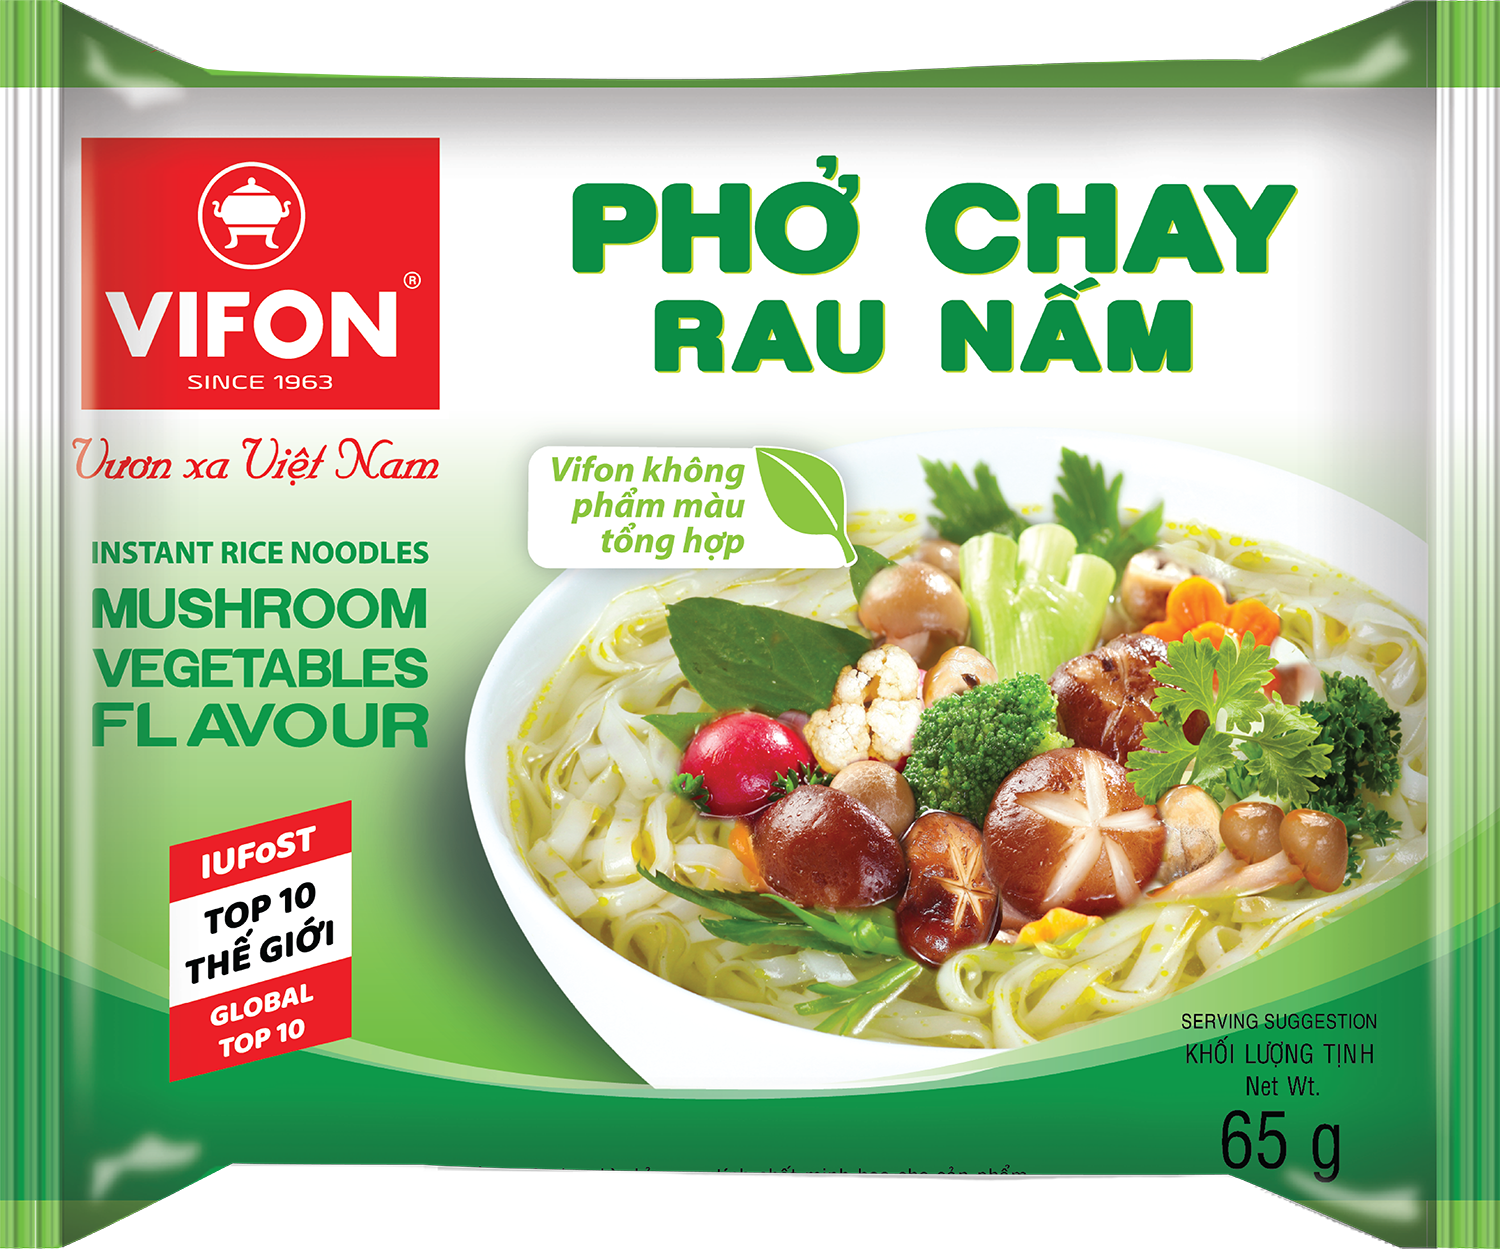 Vegetarian Style Instant Rice Noodles Mushroom Vegetable Flavor 65g